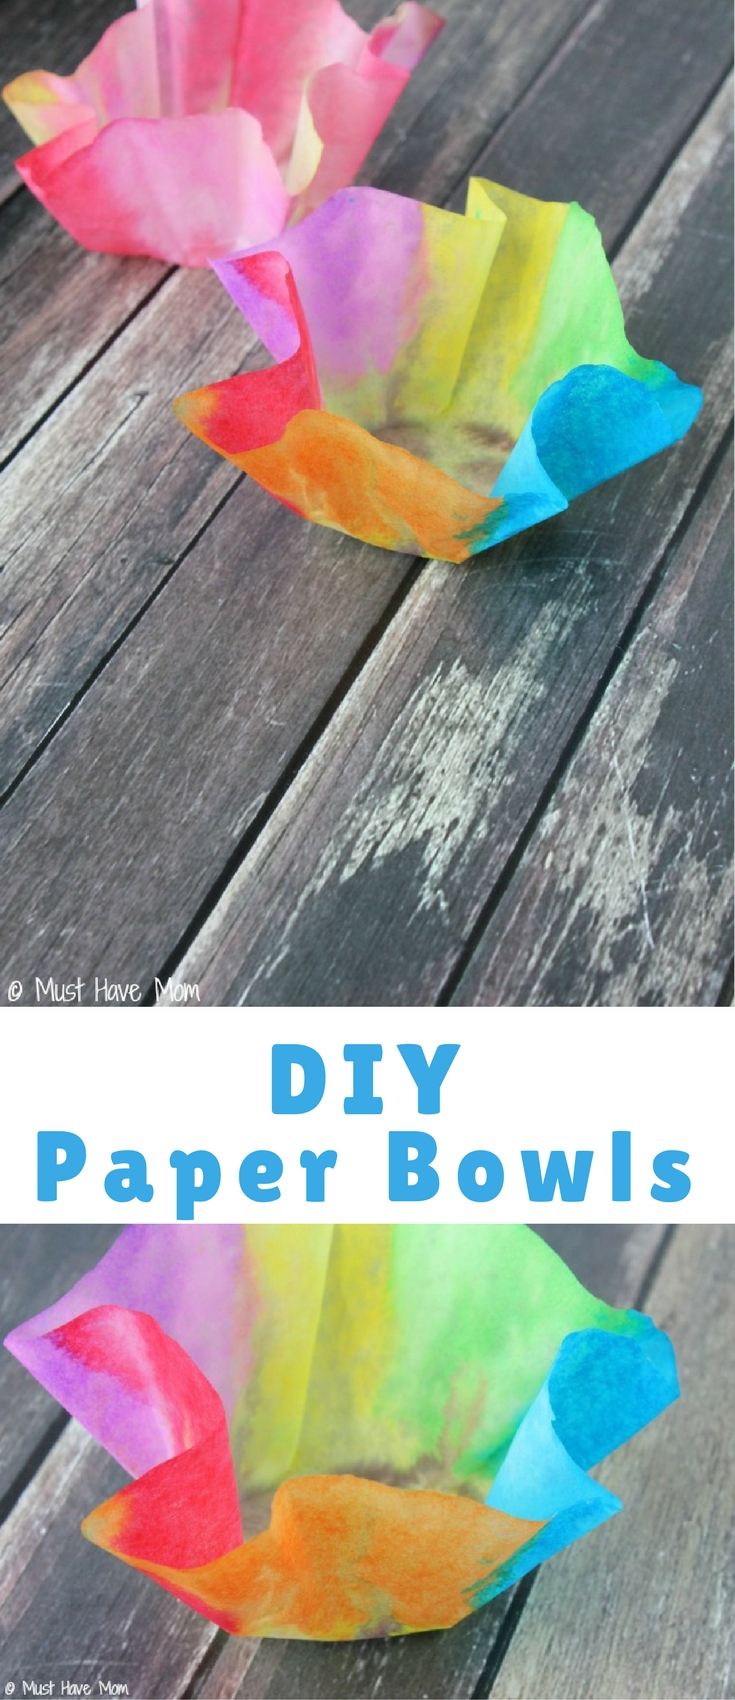 These easy 3 step DIY paper bowls are so easy and so cool! Kids as young as two can make these (with a little adult help) and then you can display them as art! They are fun and artistic and the perfect kids craft idea for a rainy day.